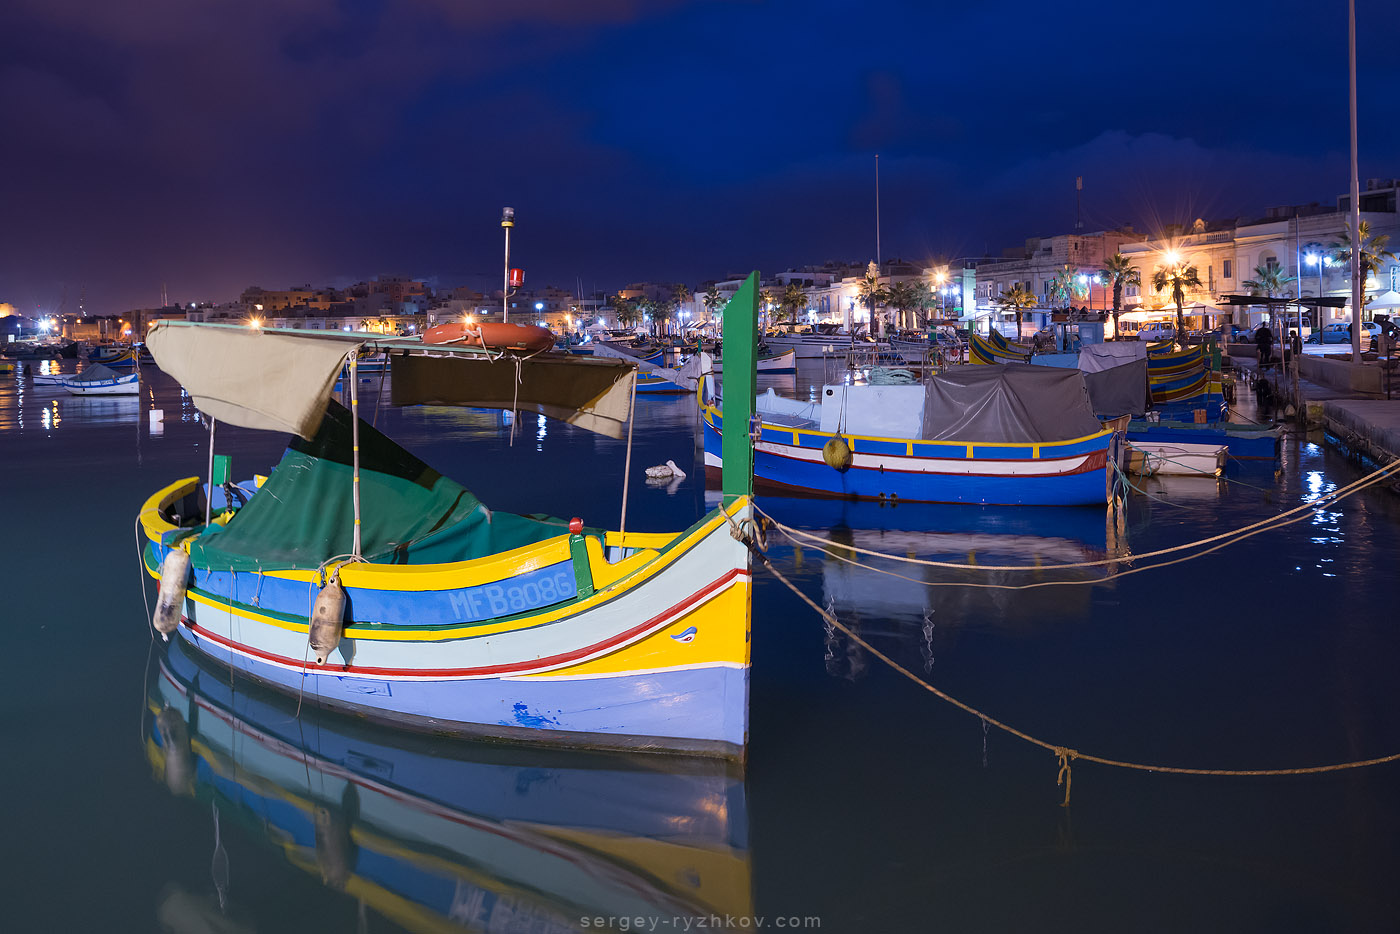 Traditional Maltese boats luzzu in Marsaxlokk at the night